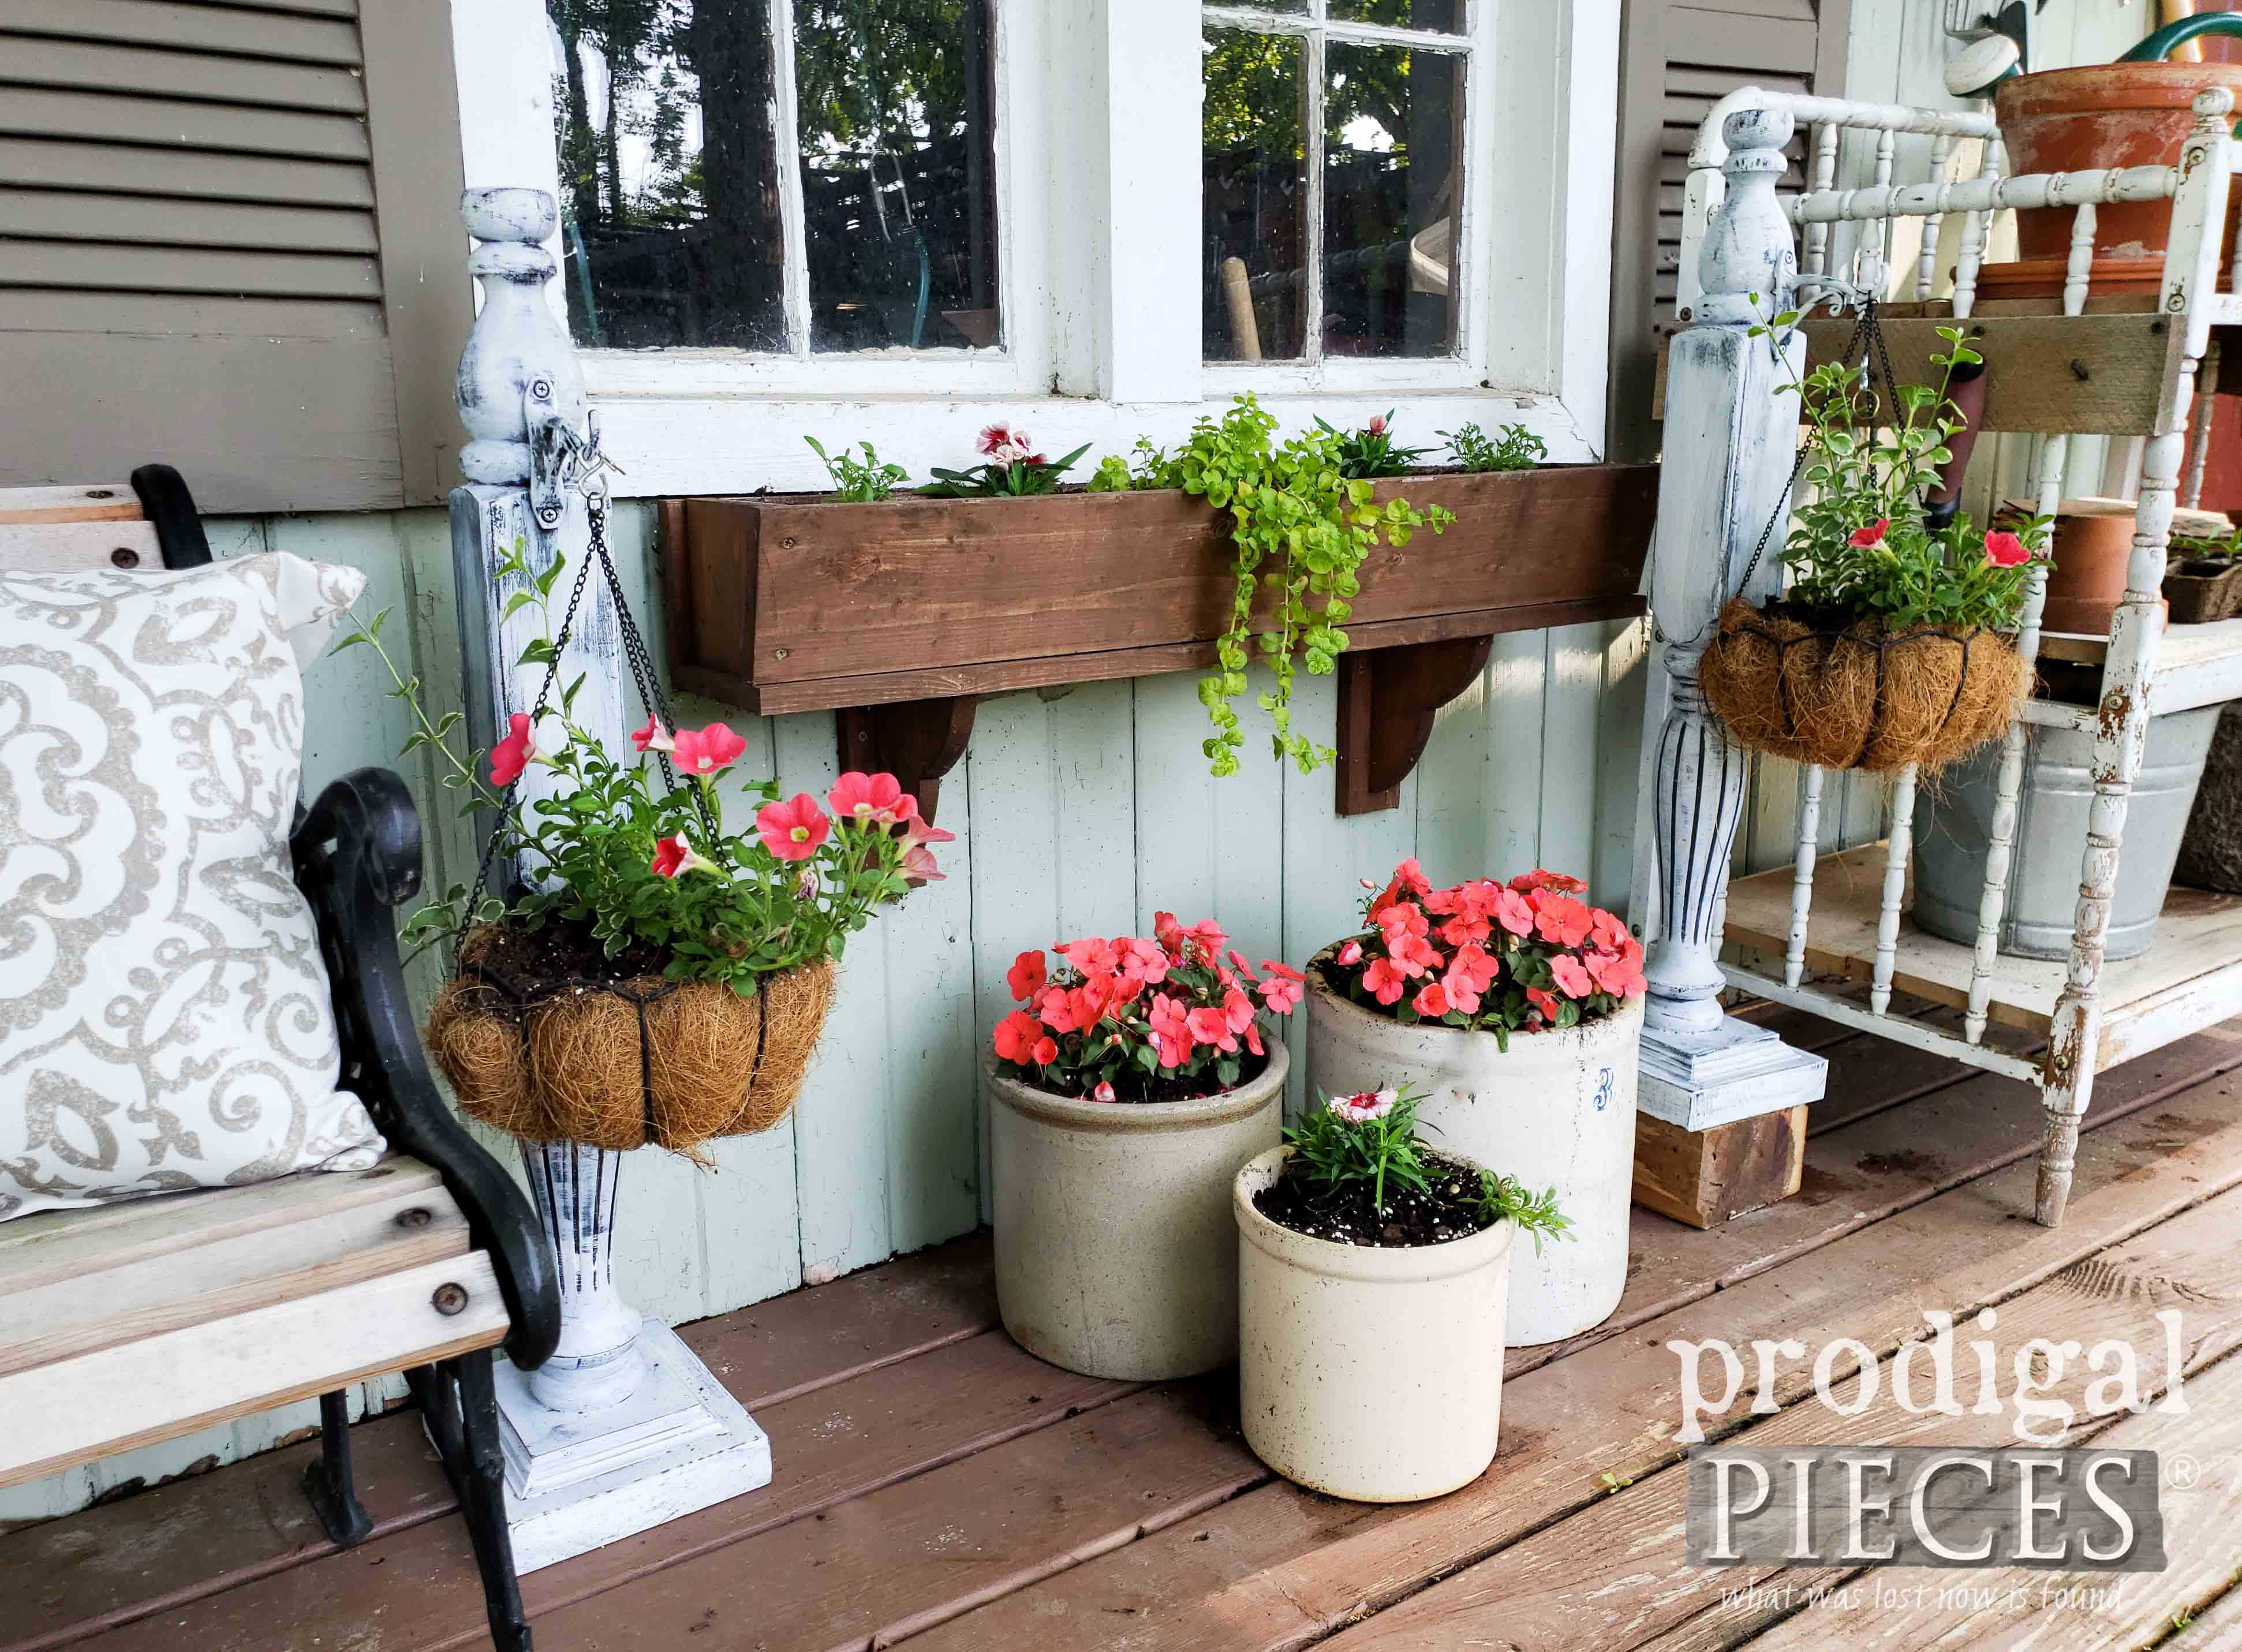 Upcycled Footboard for Garden Shed Decor by Larissa of Prodigal Pieces | prodigalpieces.com #prodigalpieces #home #garden #farmhouse #homedecor #summer #diy